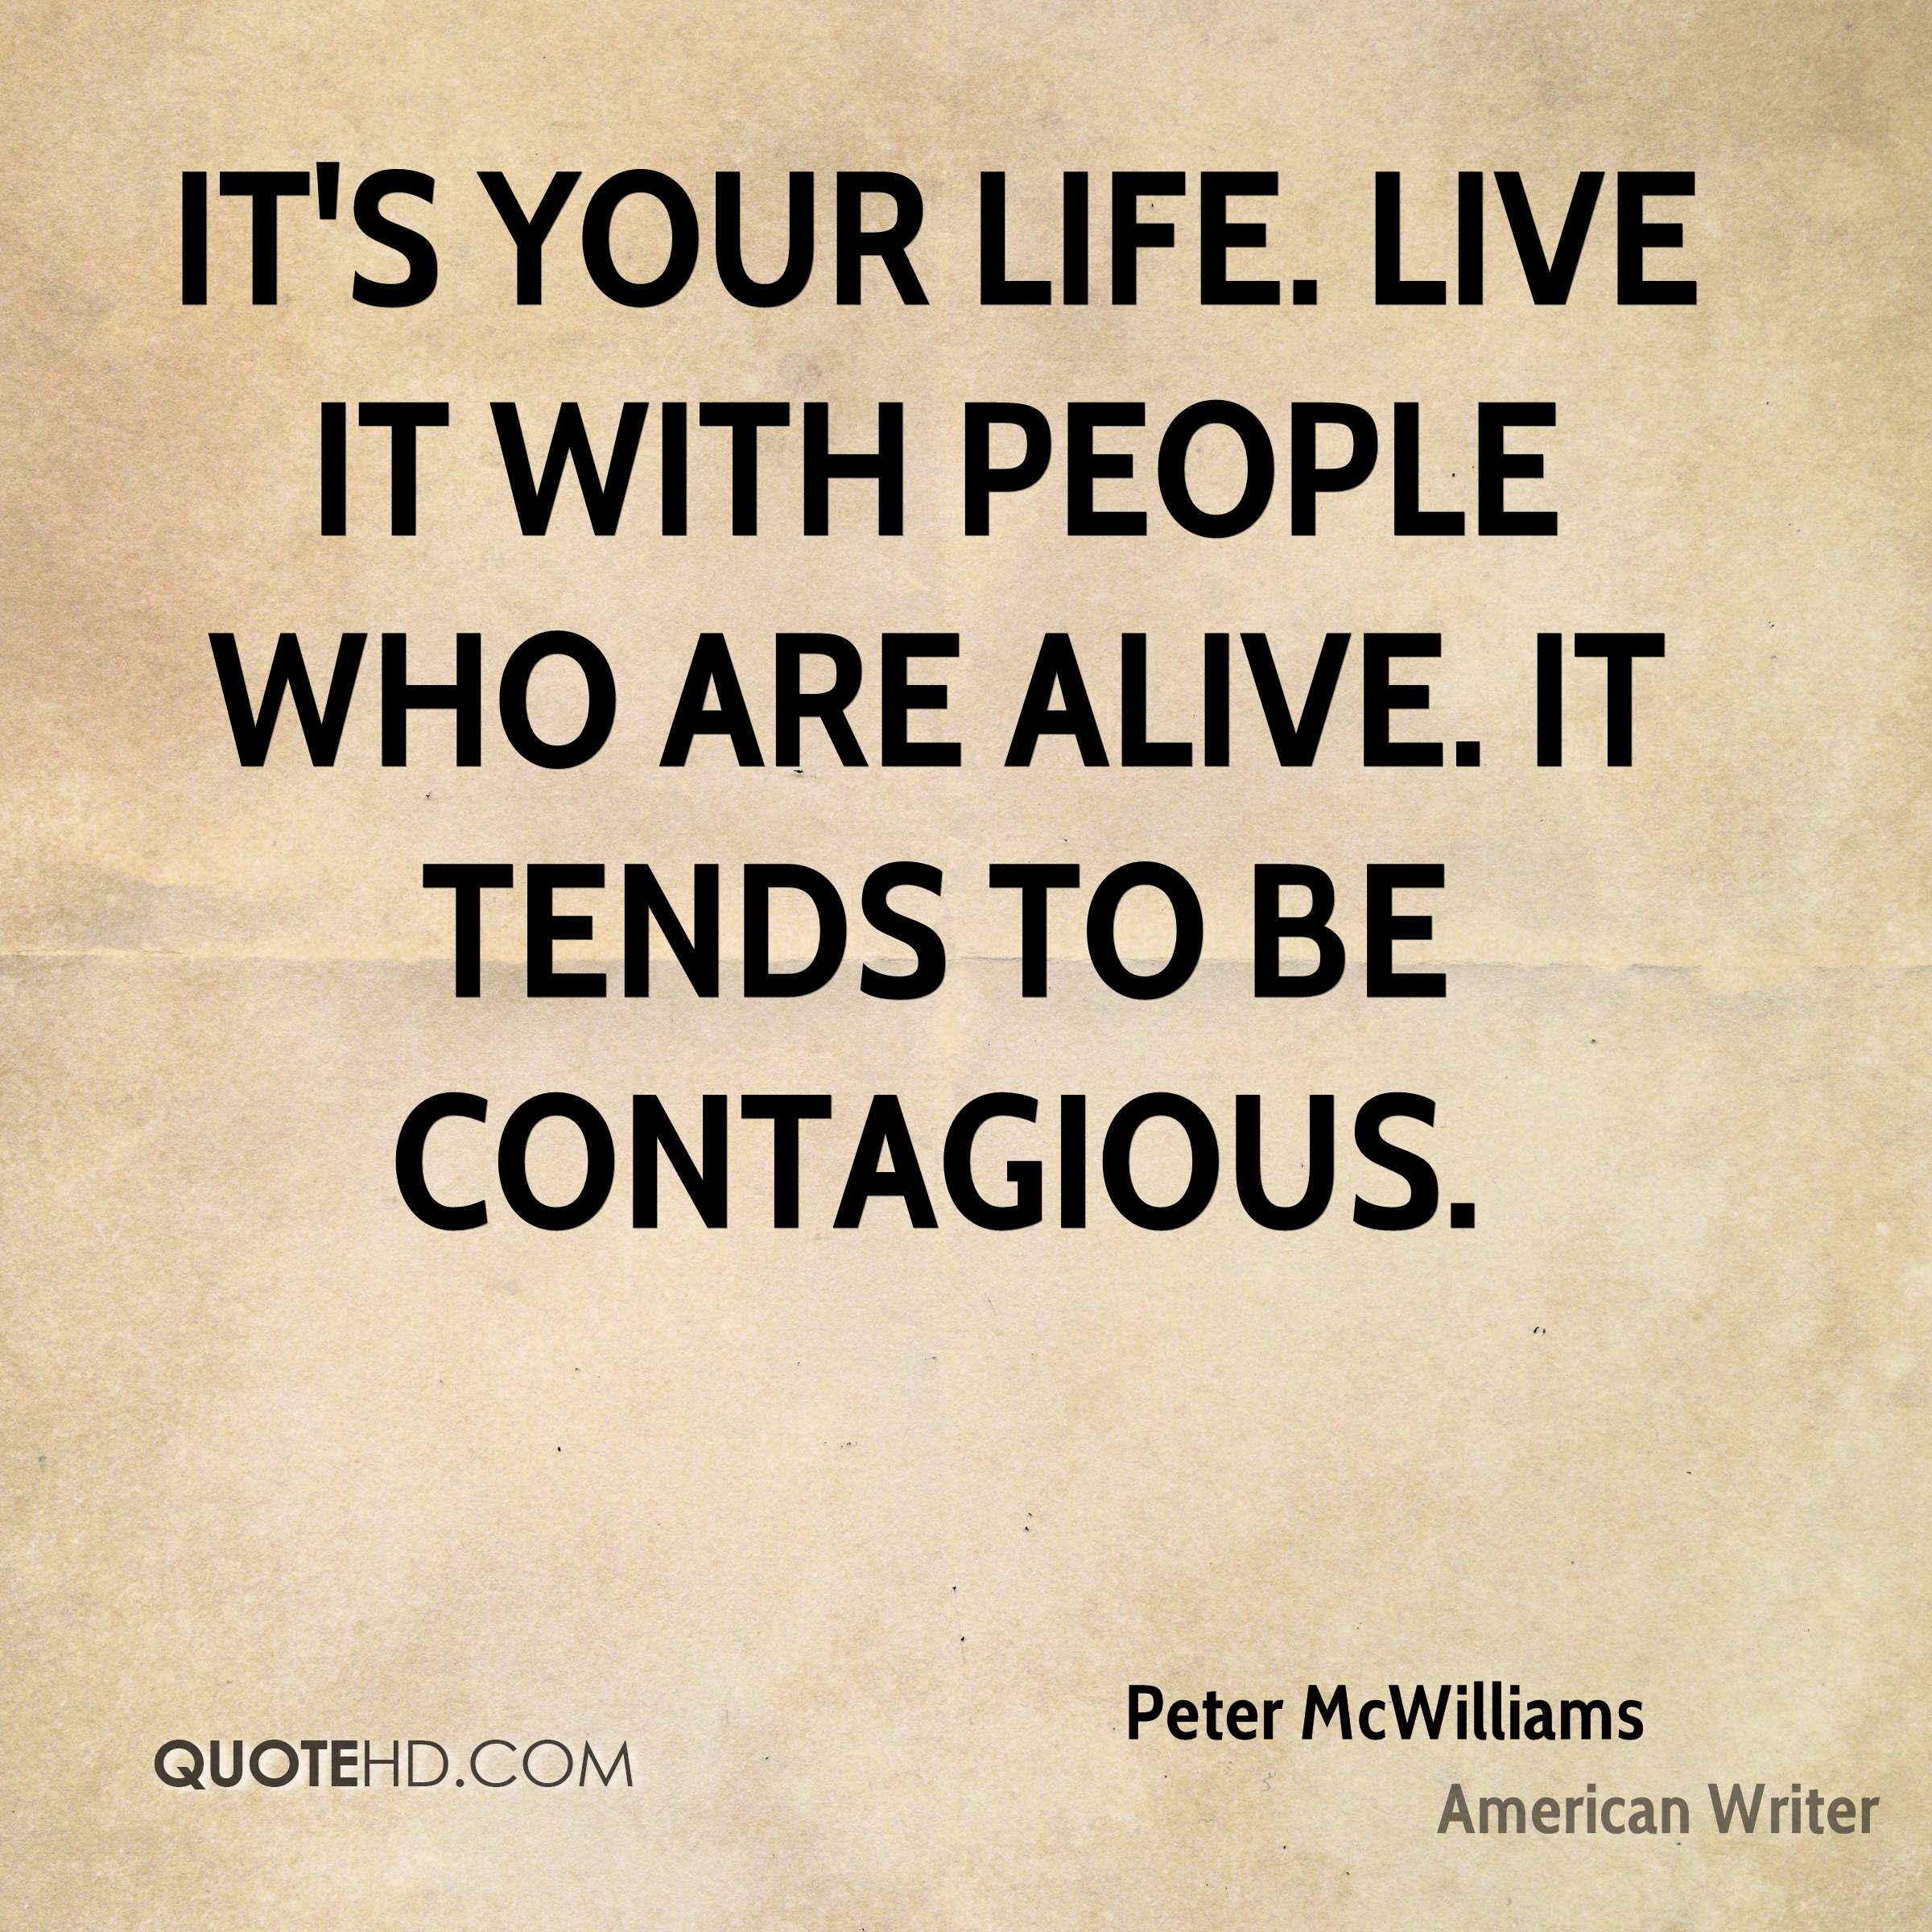 It's your life. Live it with people who are alive. It tends to be contagious.